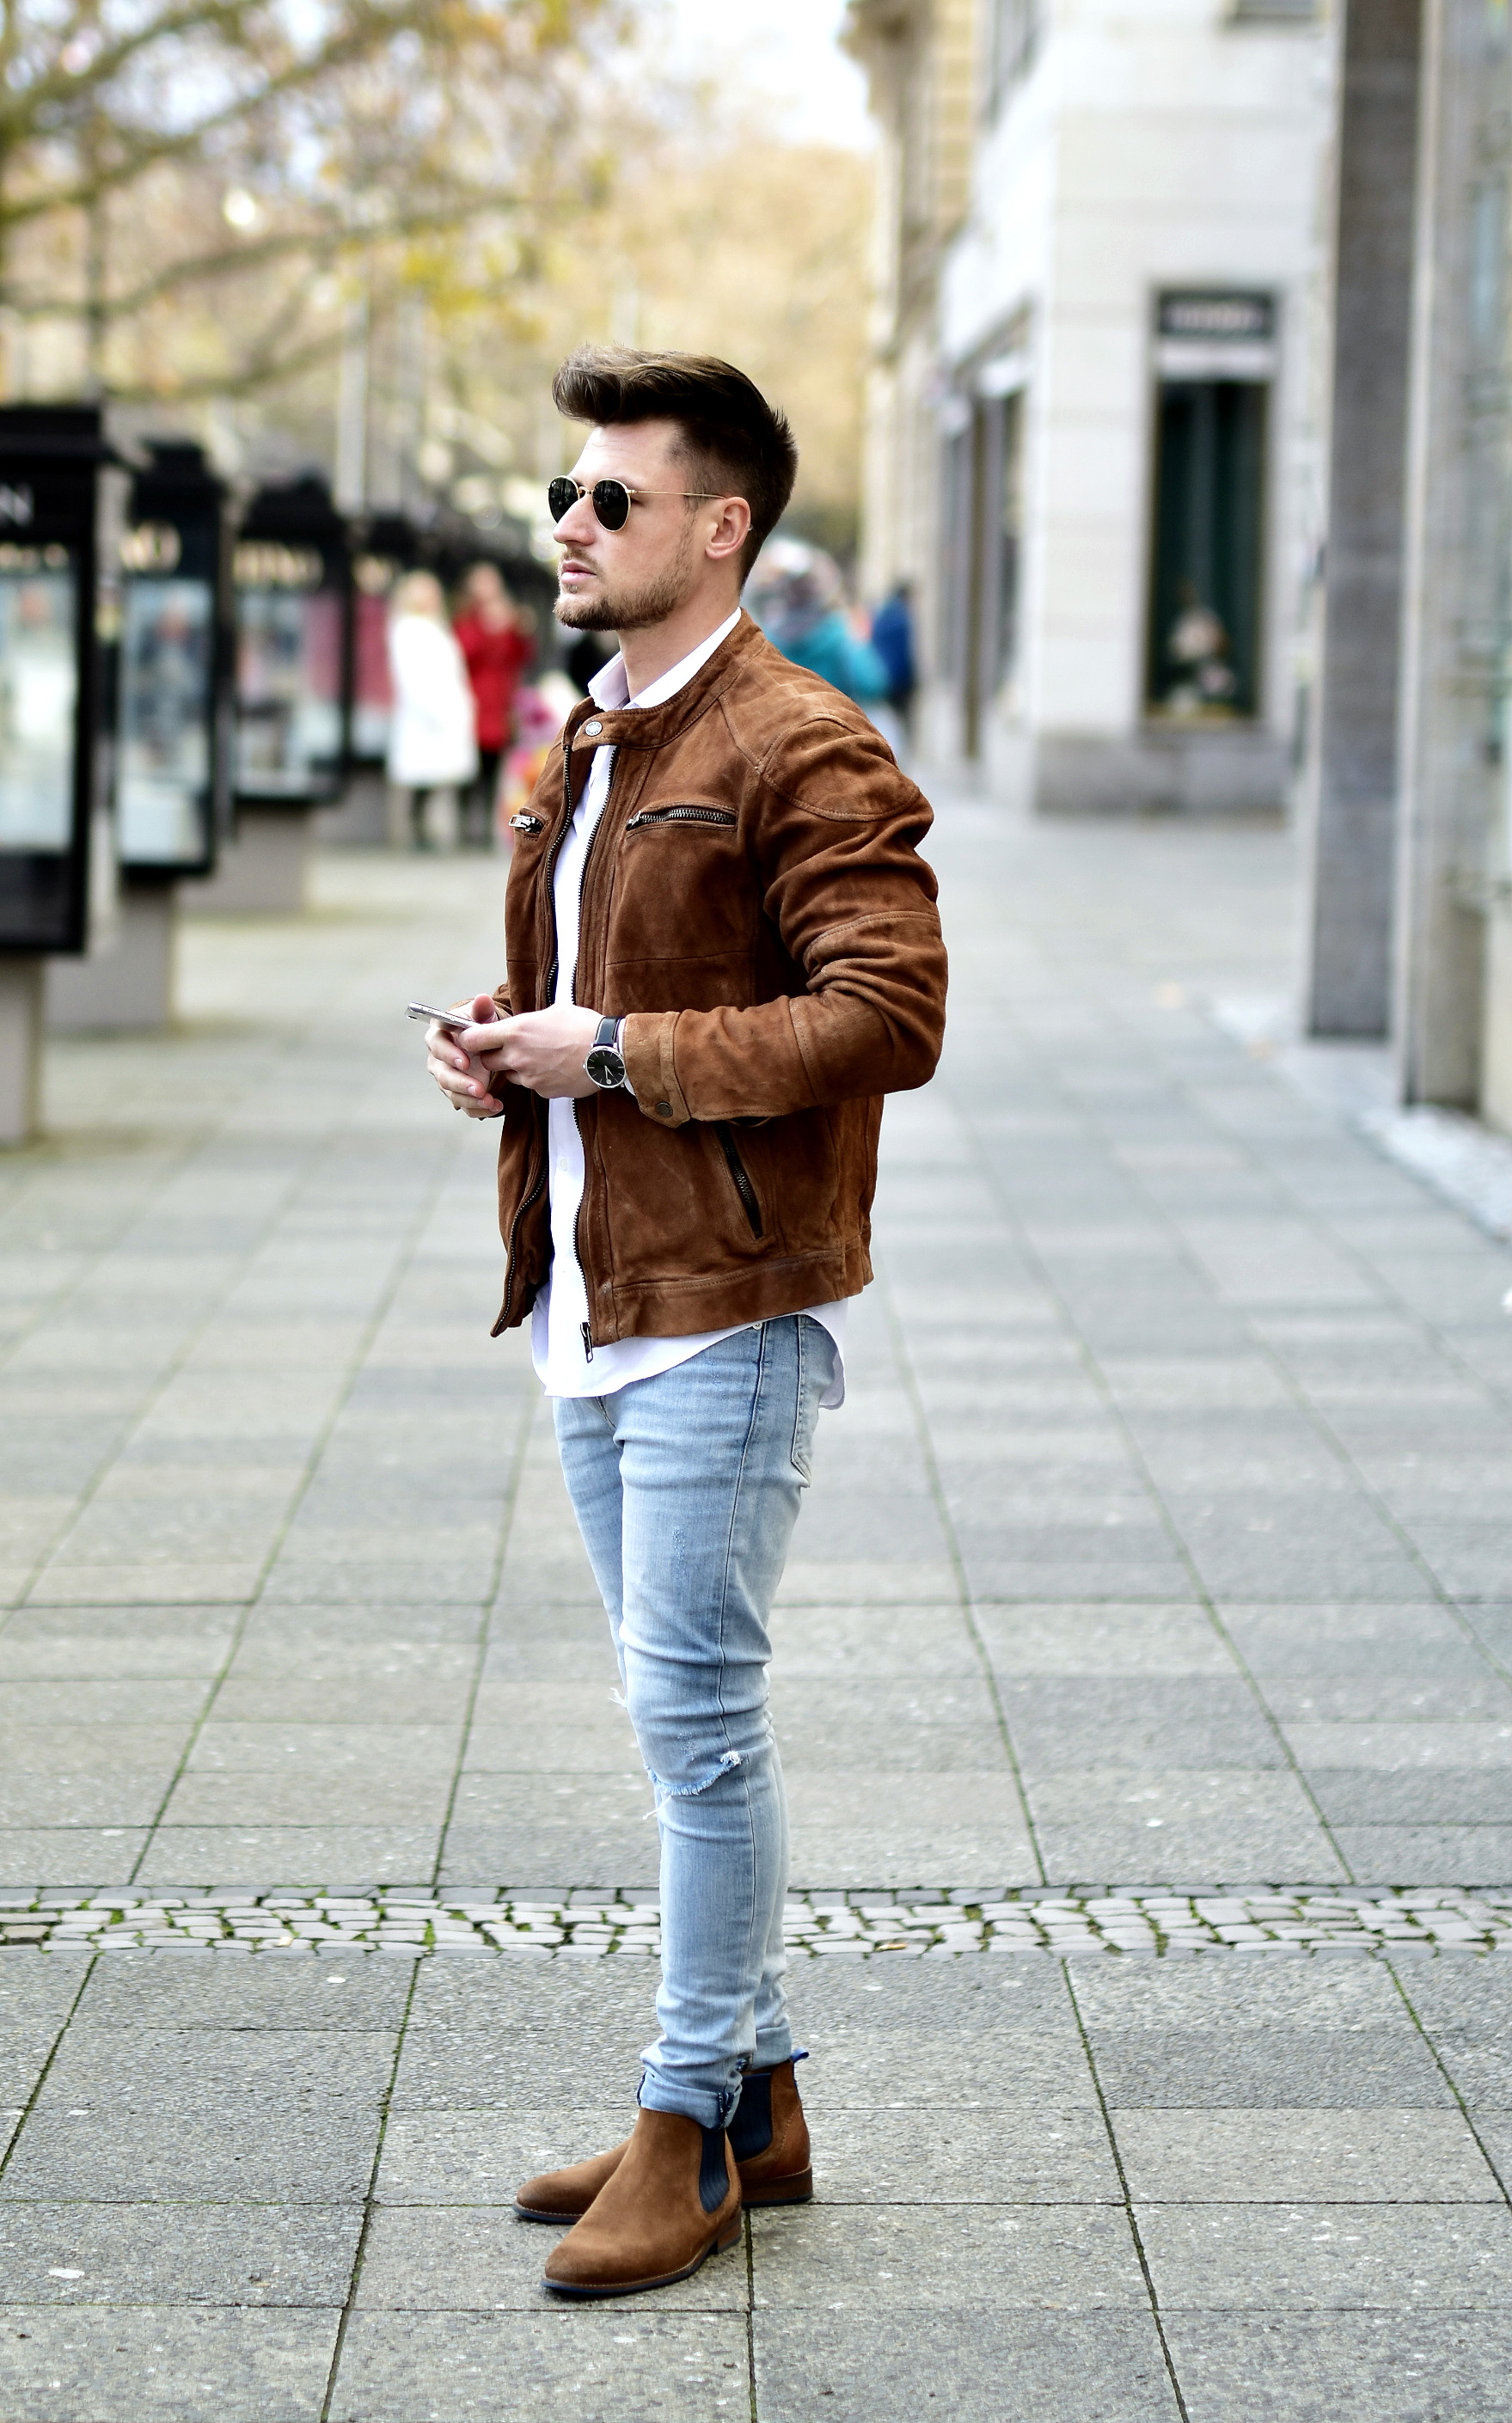 tommeezjerry-styleblog-maennerblog-maenner-modeblog-berlin-berlinblog-maennermodeblog-outfit-lederjacke-beedgy-movado-chelsea-boots-7